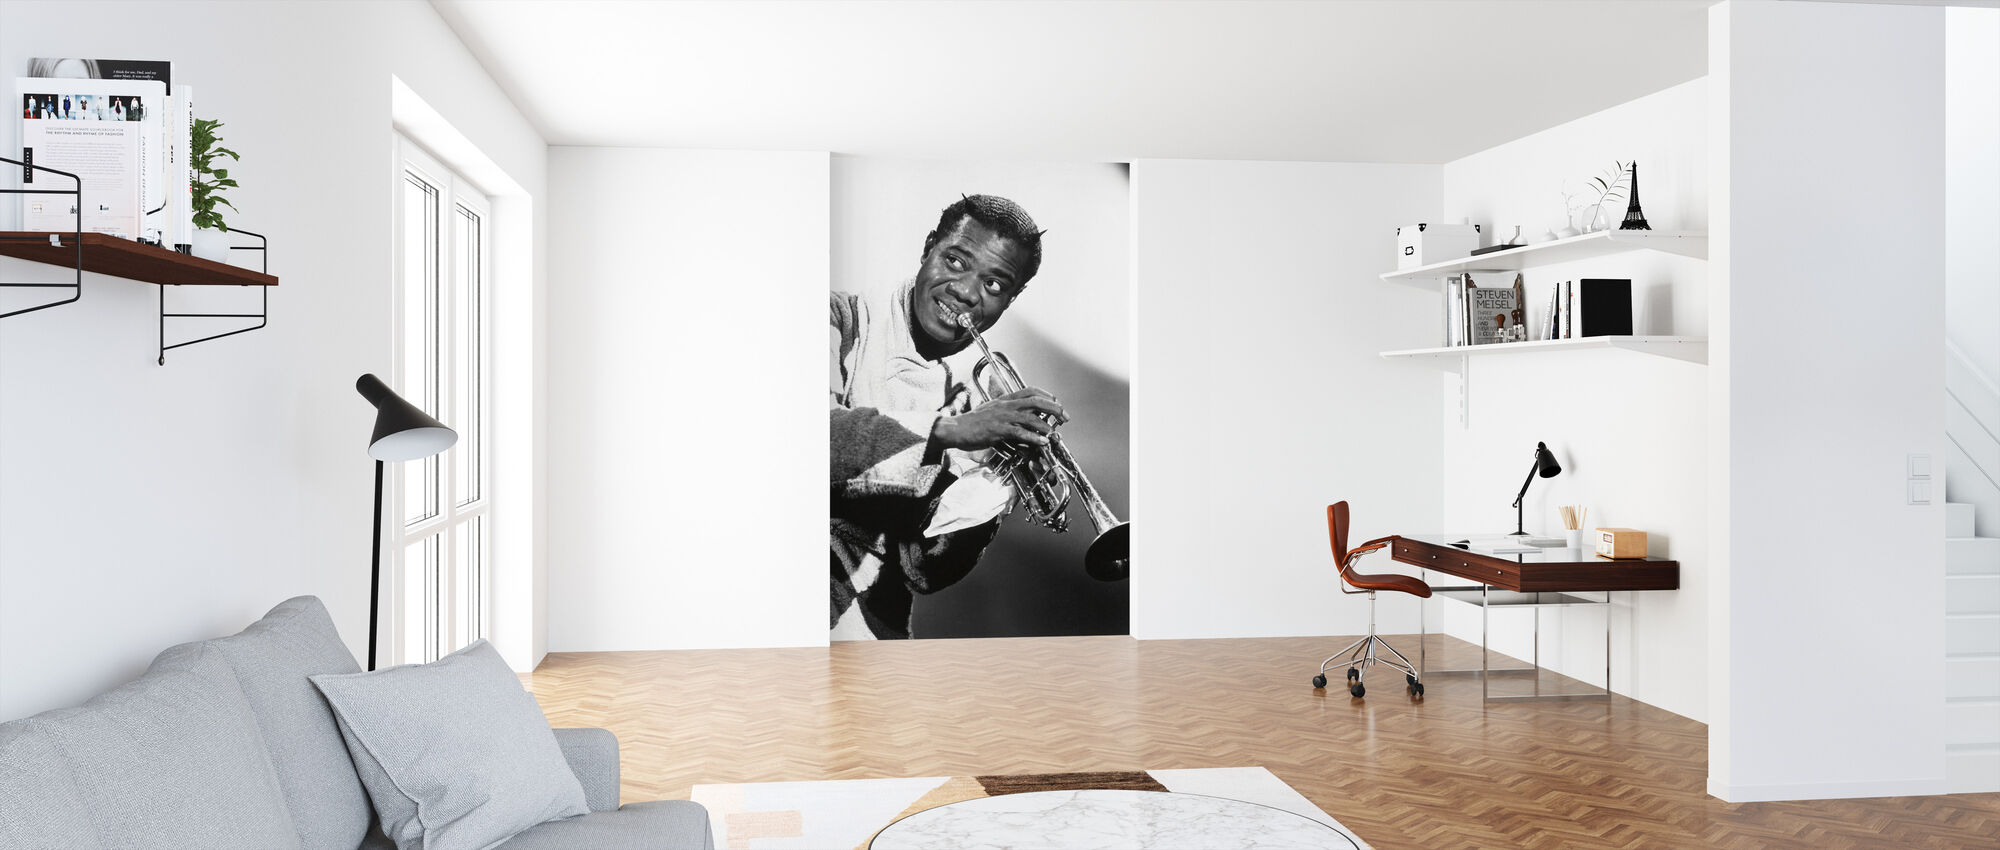 Cabin in the Sky - Louis Armstrong - Wallpaper - Office